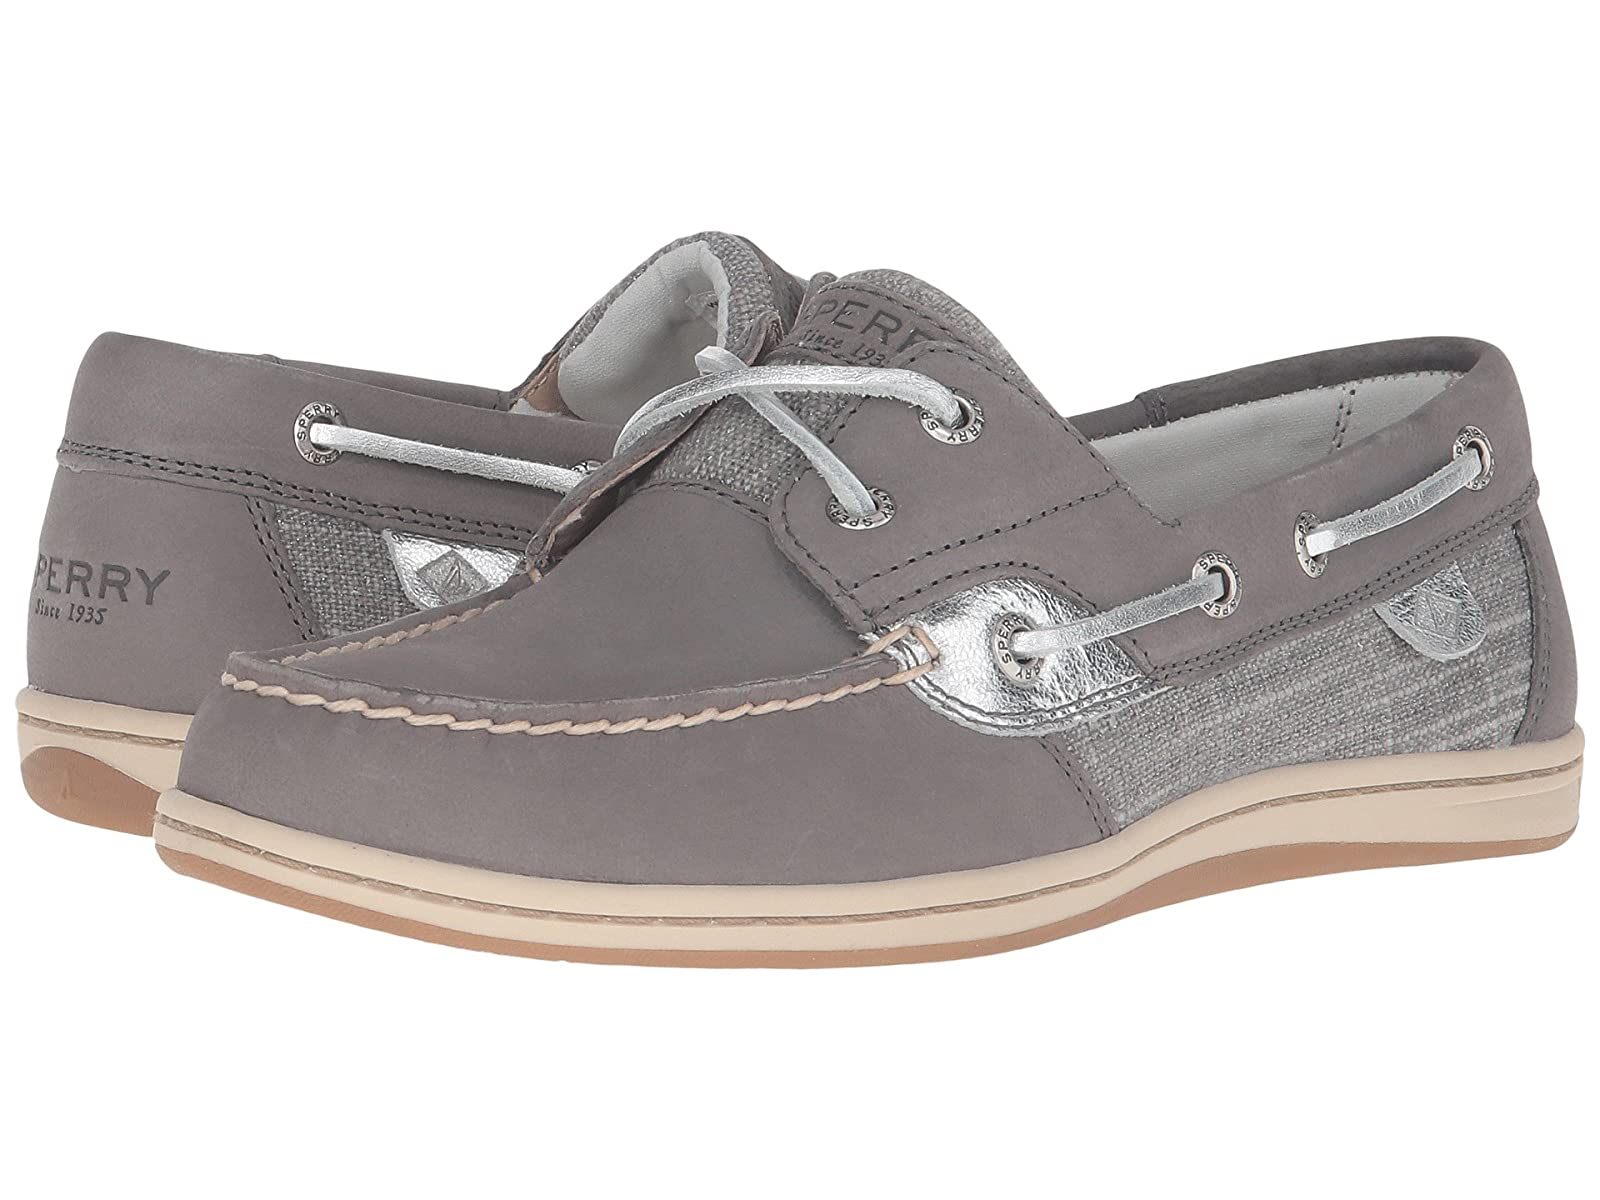 Sperry Koifish Metallic SparkleCheap and distinctive eye-catching shoes